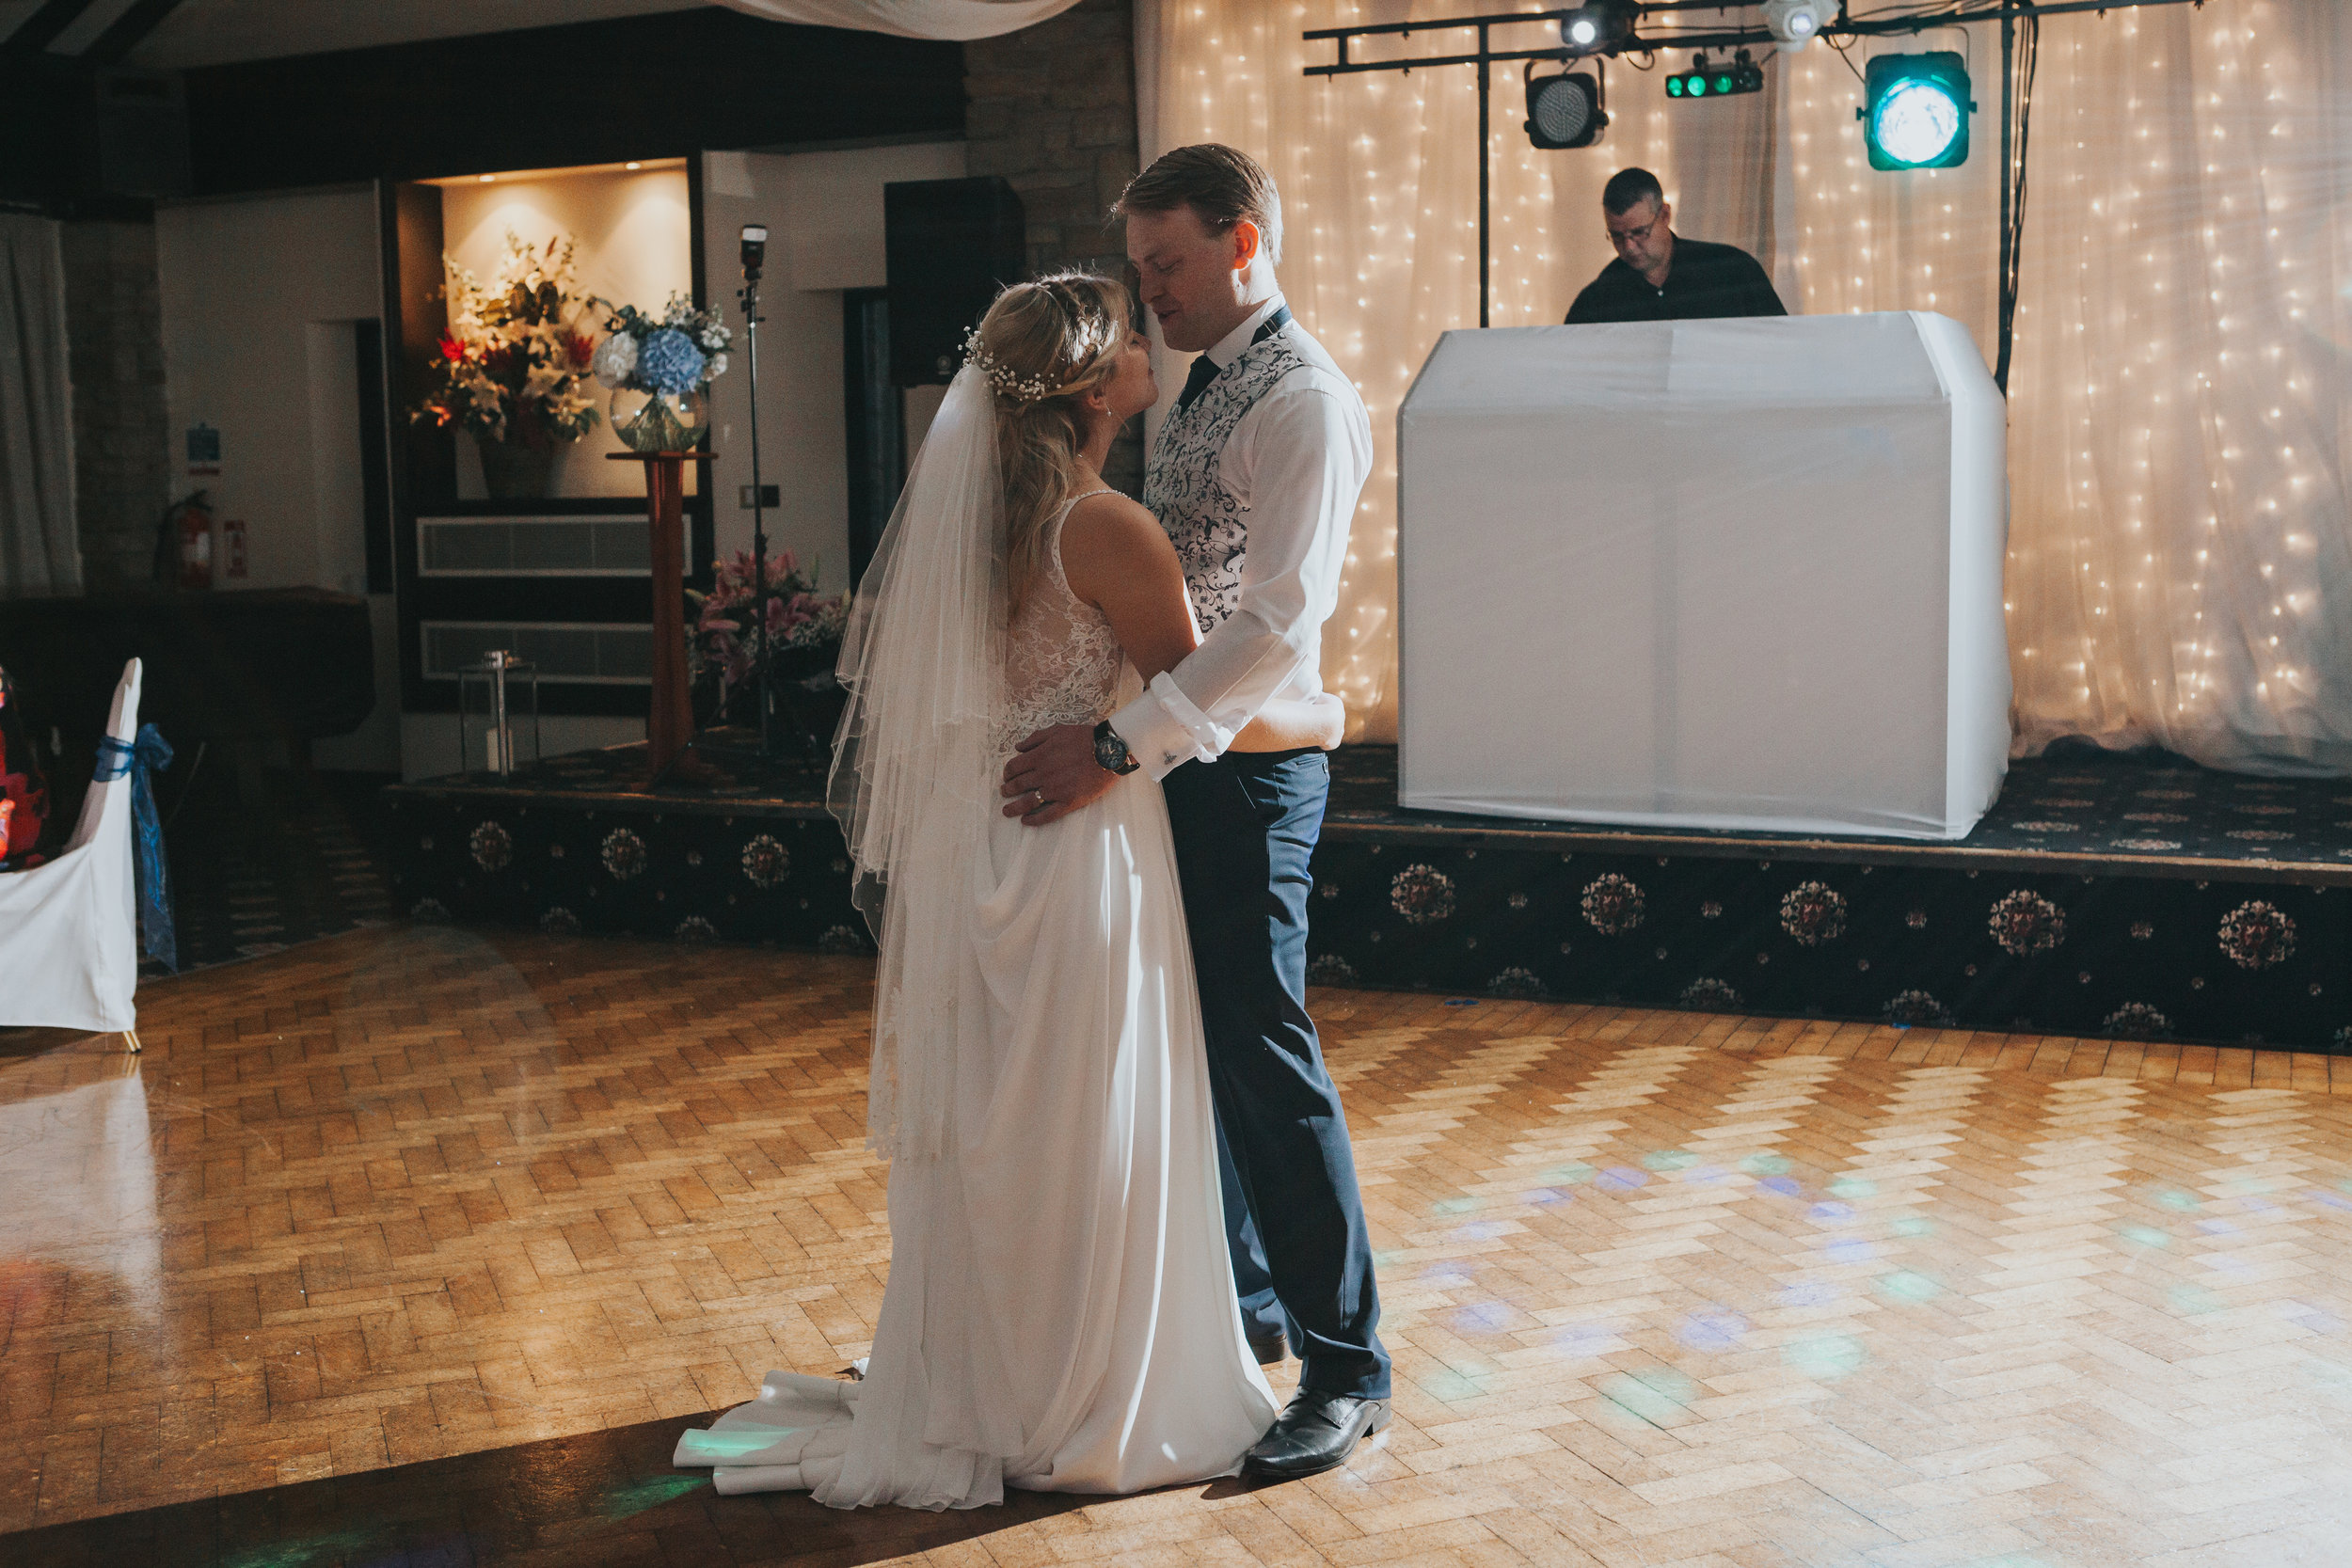 Bride and Groom alone on dance floor together at Mytton Fold Hotel.